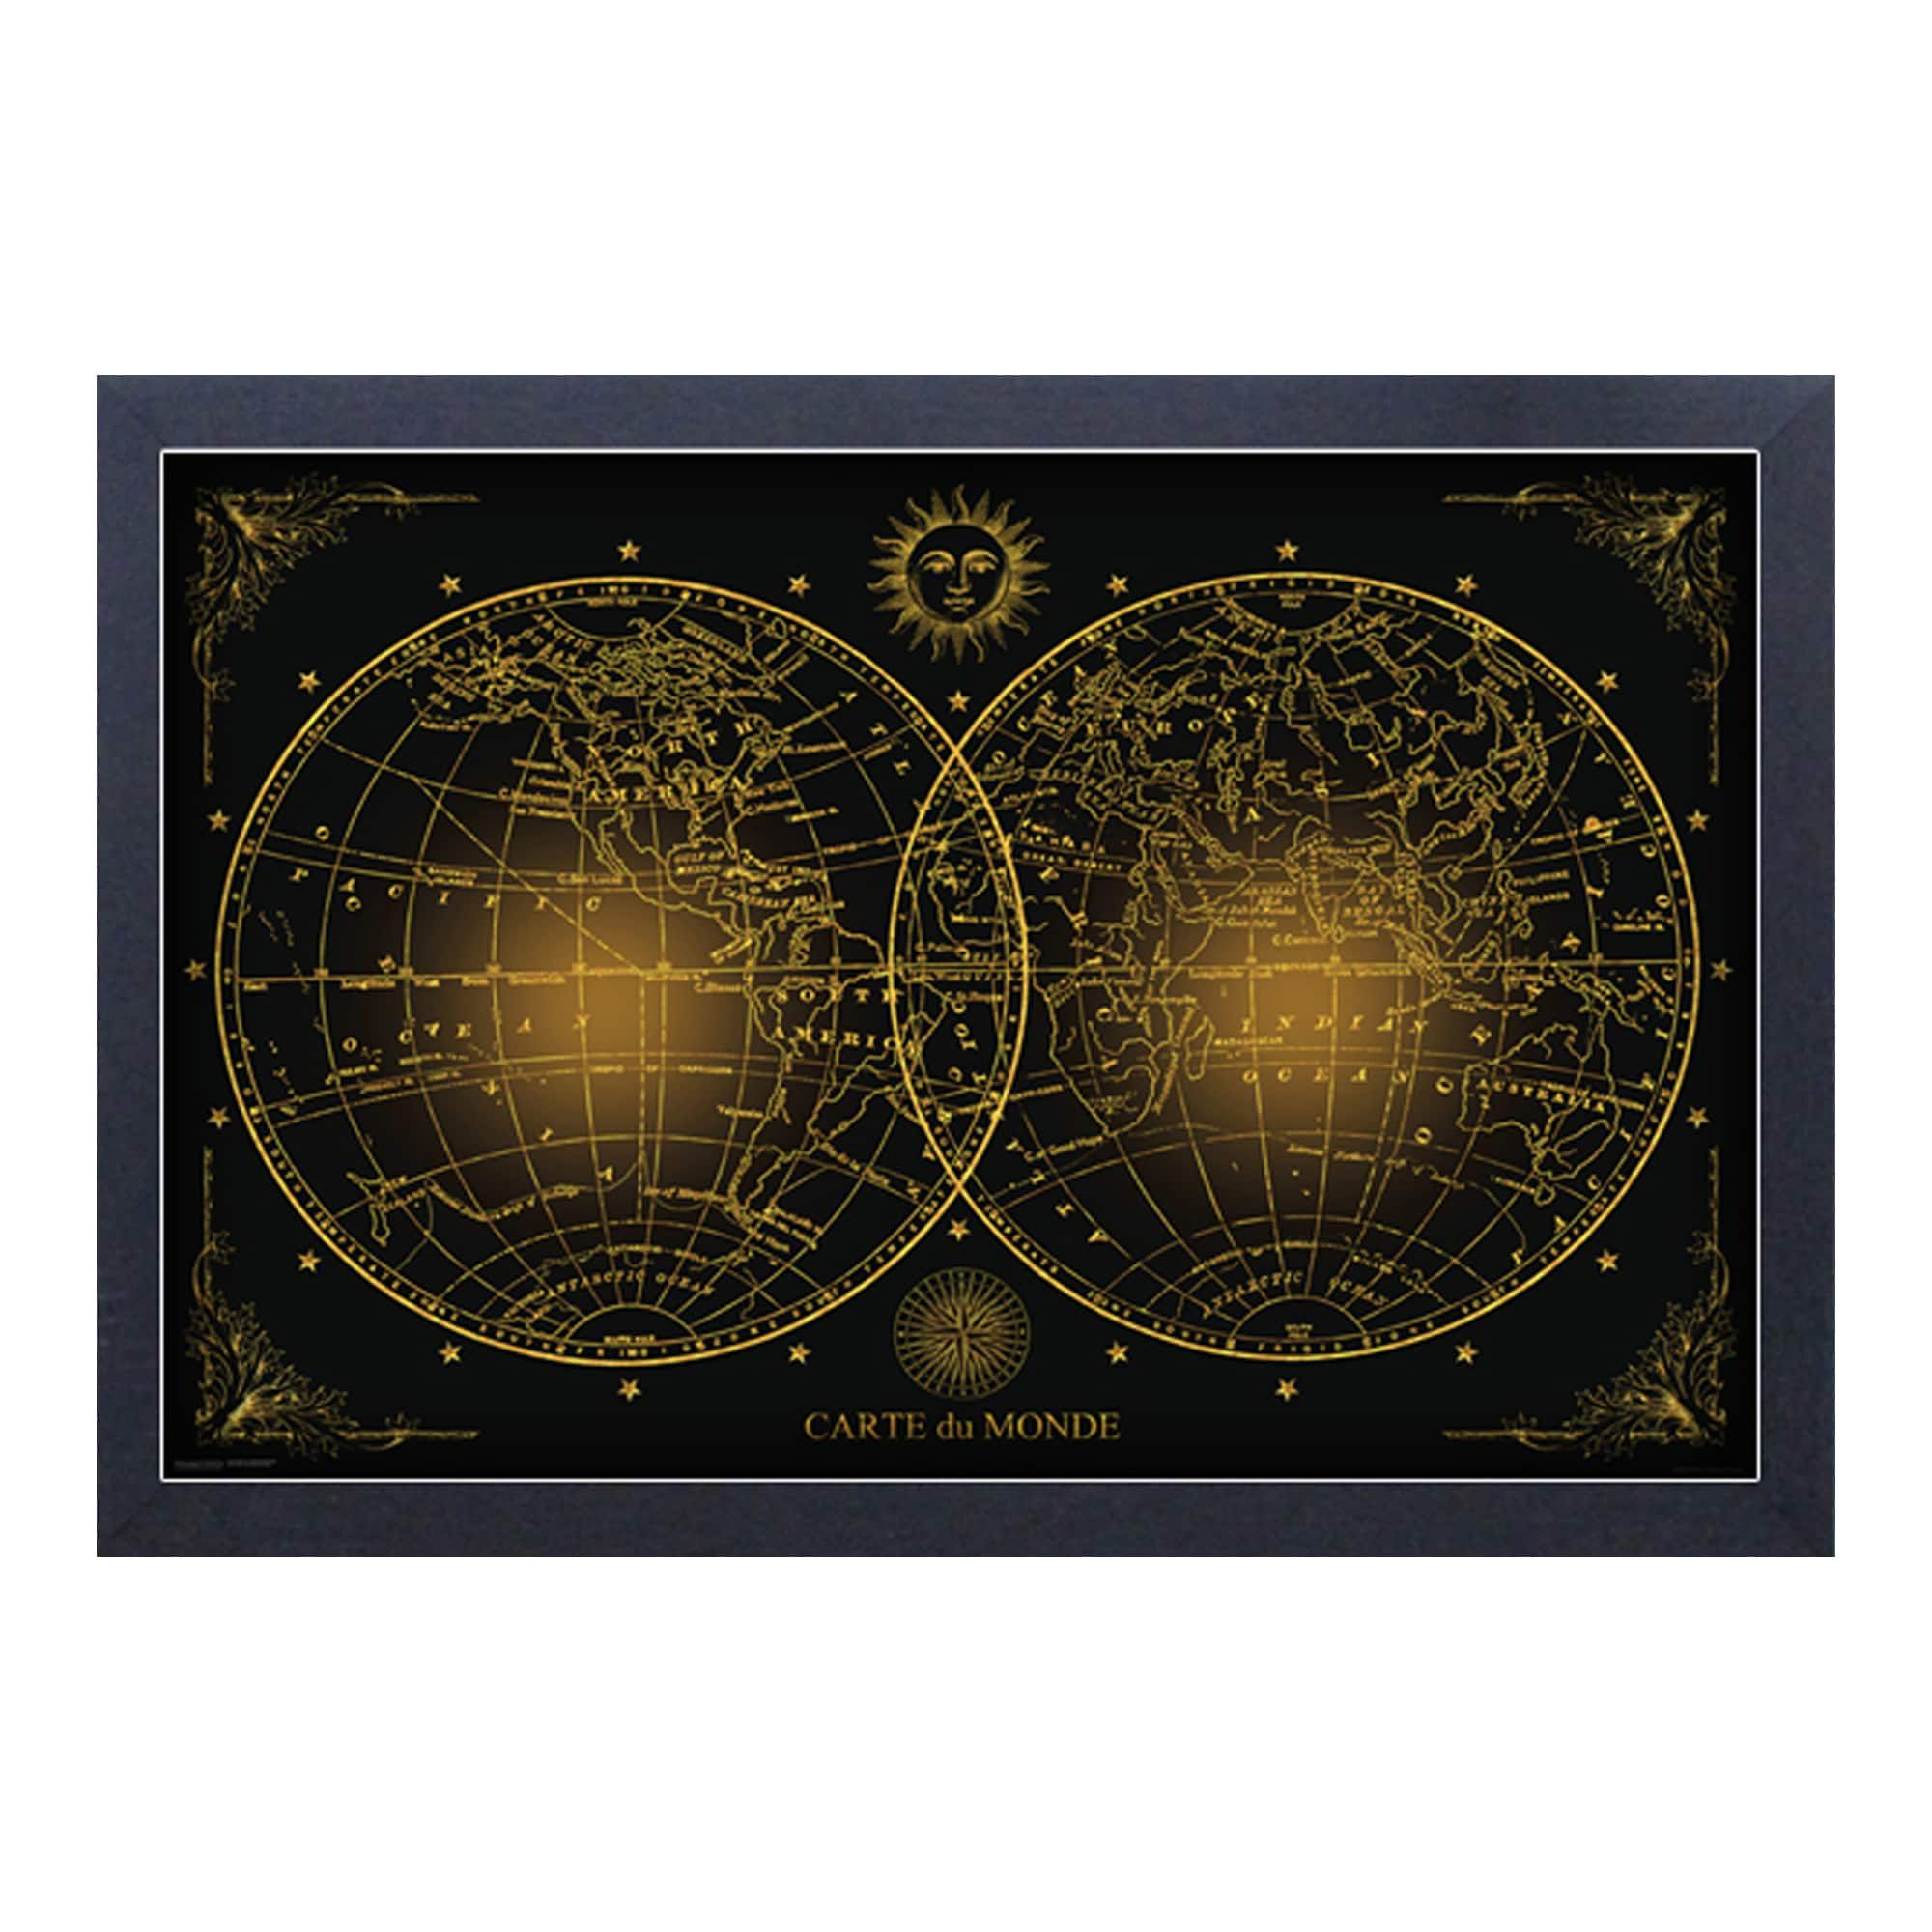 Pyramid america world map carte du monde framed 11x17 print pyramid america world map carte du monde framed 11x17 print sciox Image collections